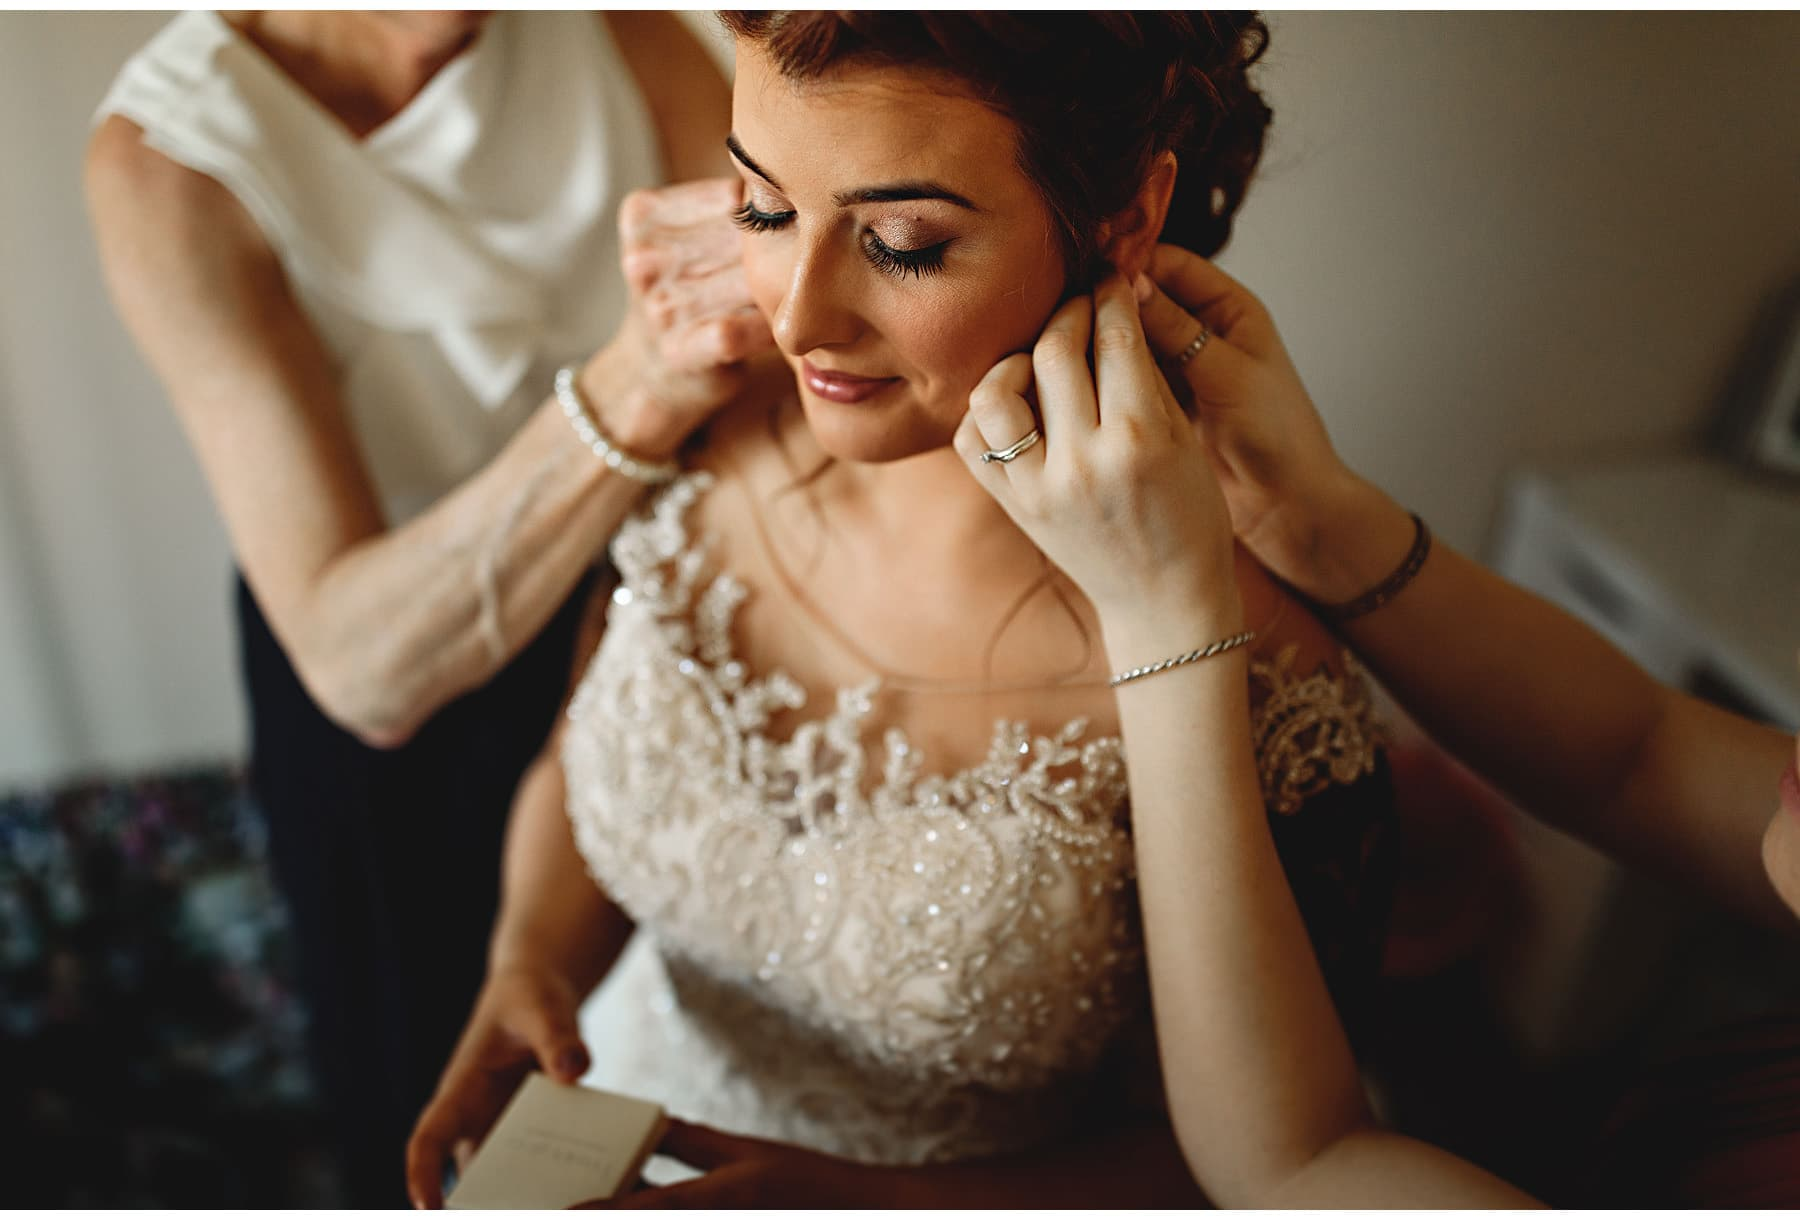 final touches before the wedding